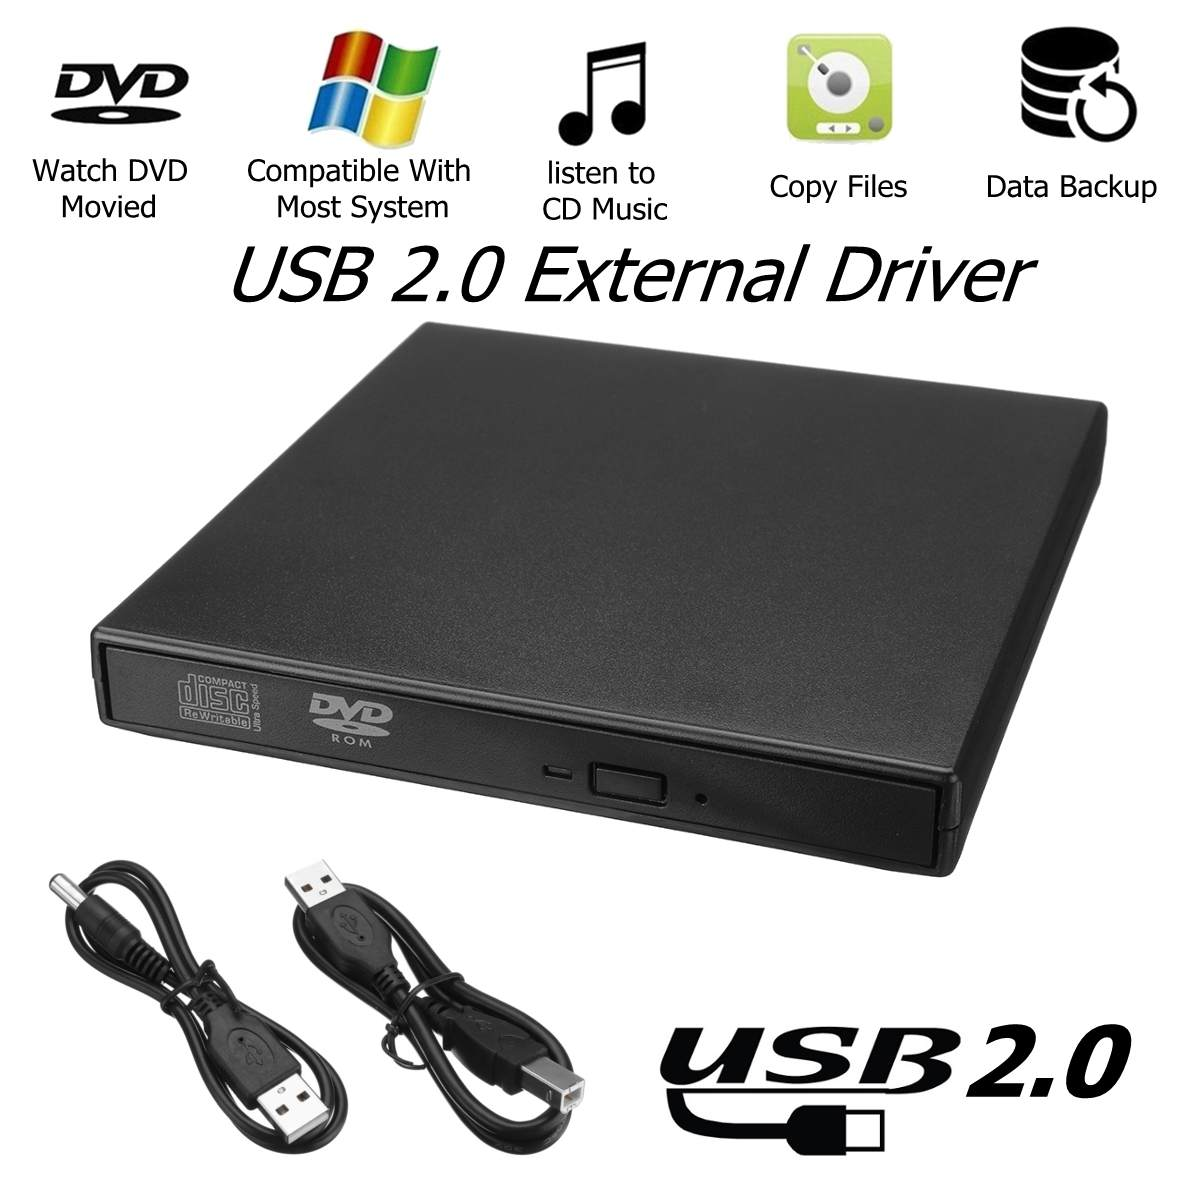 External USB2.0 RW CD Writer Slim Drive Burner DVD Reader Player Optical Drives For PC LaptopExternal USB2.0 RW CD Writer Slim Drive Burner DVD Reader Player Optical Drives For PC Laptop